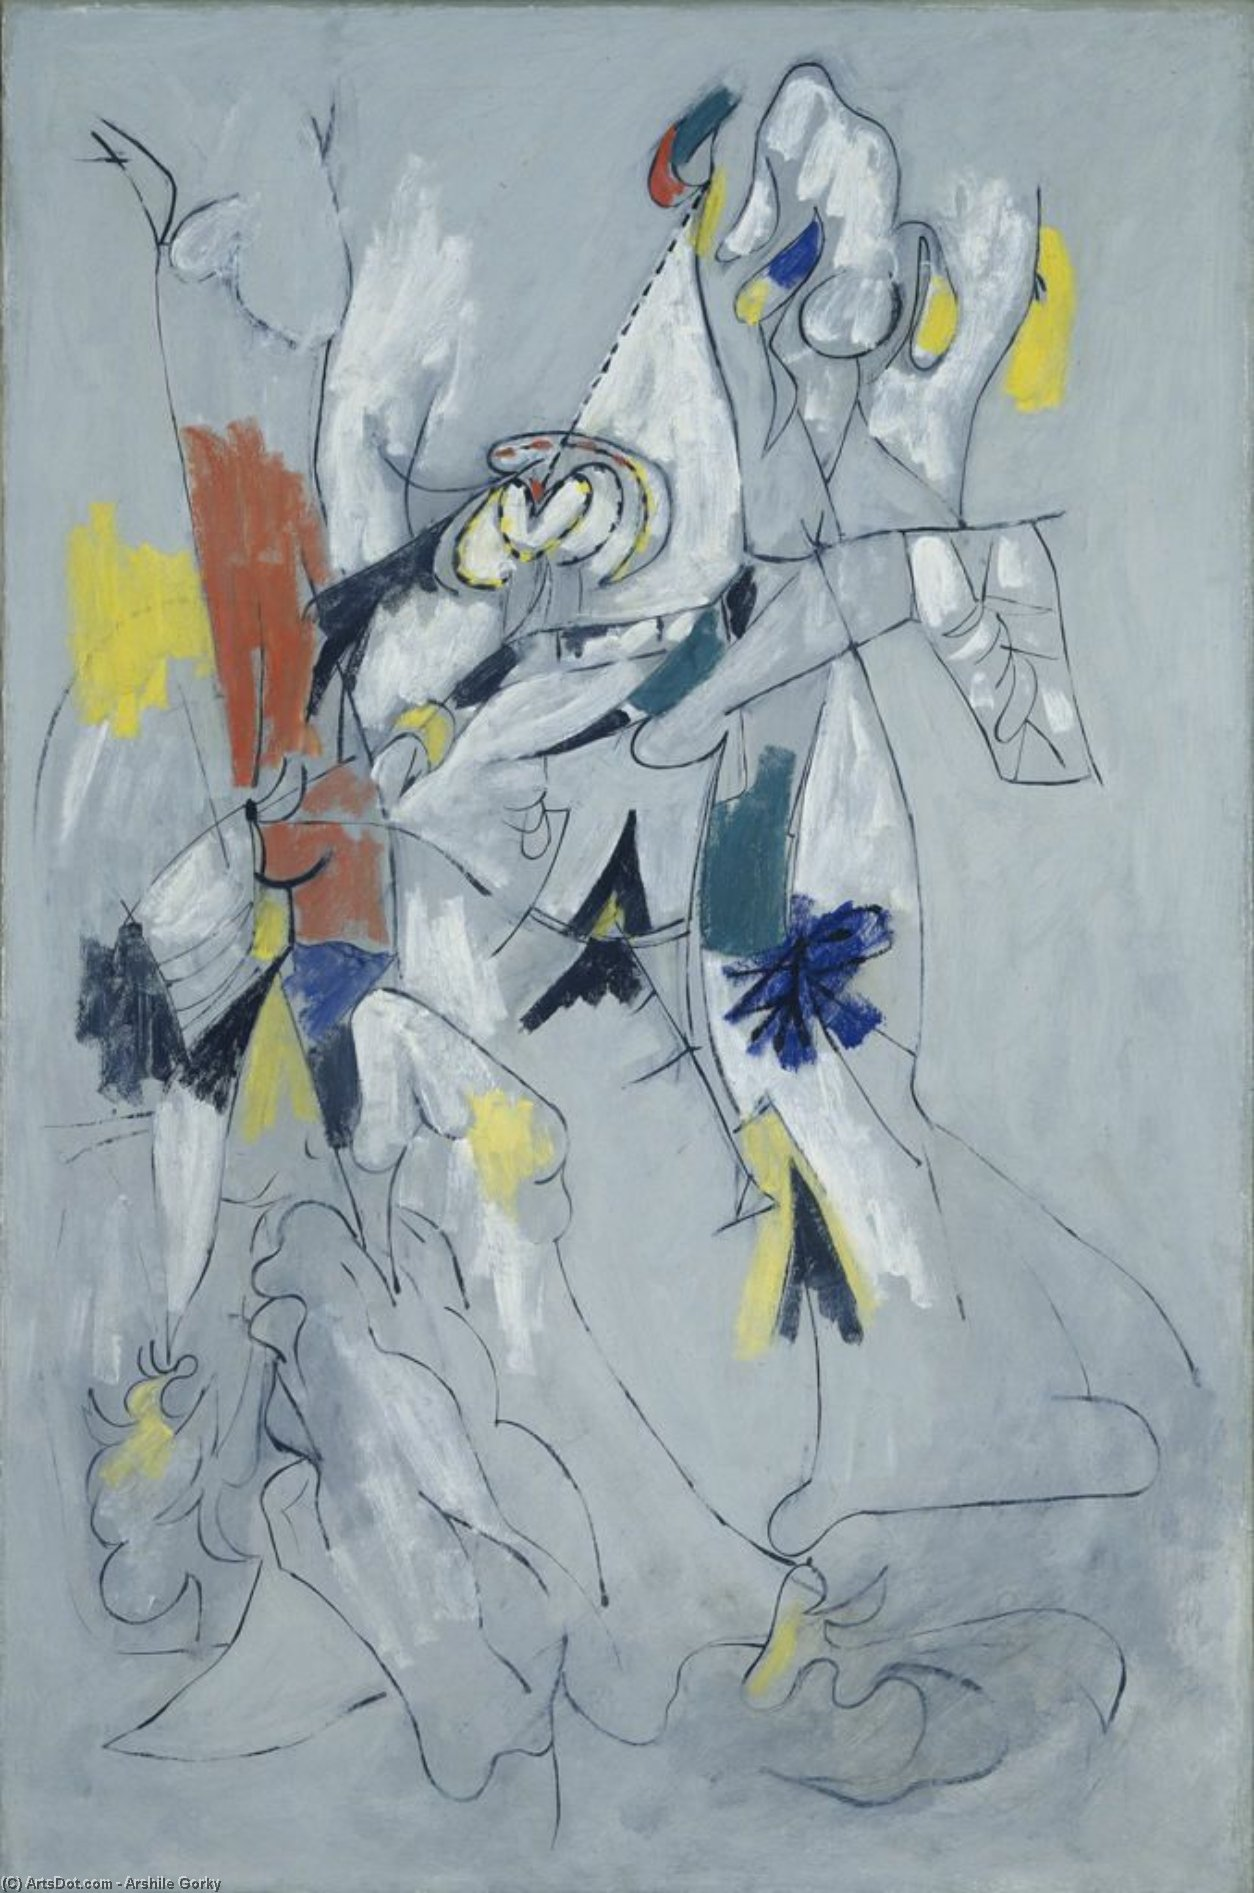 Wikioo.org - The Encyclopedia of Fine Arts - Painting, Artwork by Arshile Gorky - Waterfall